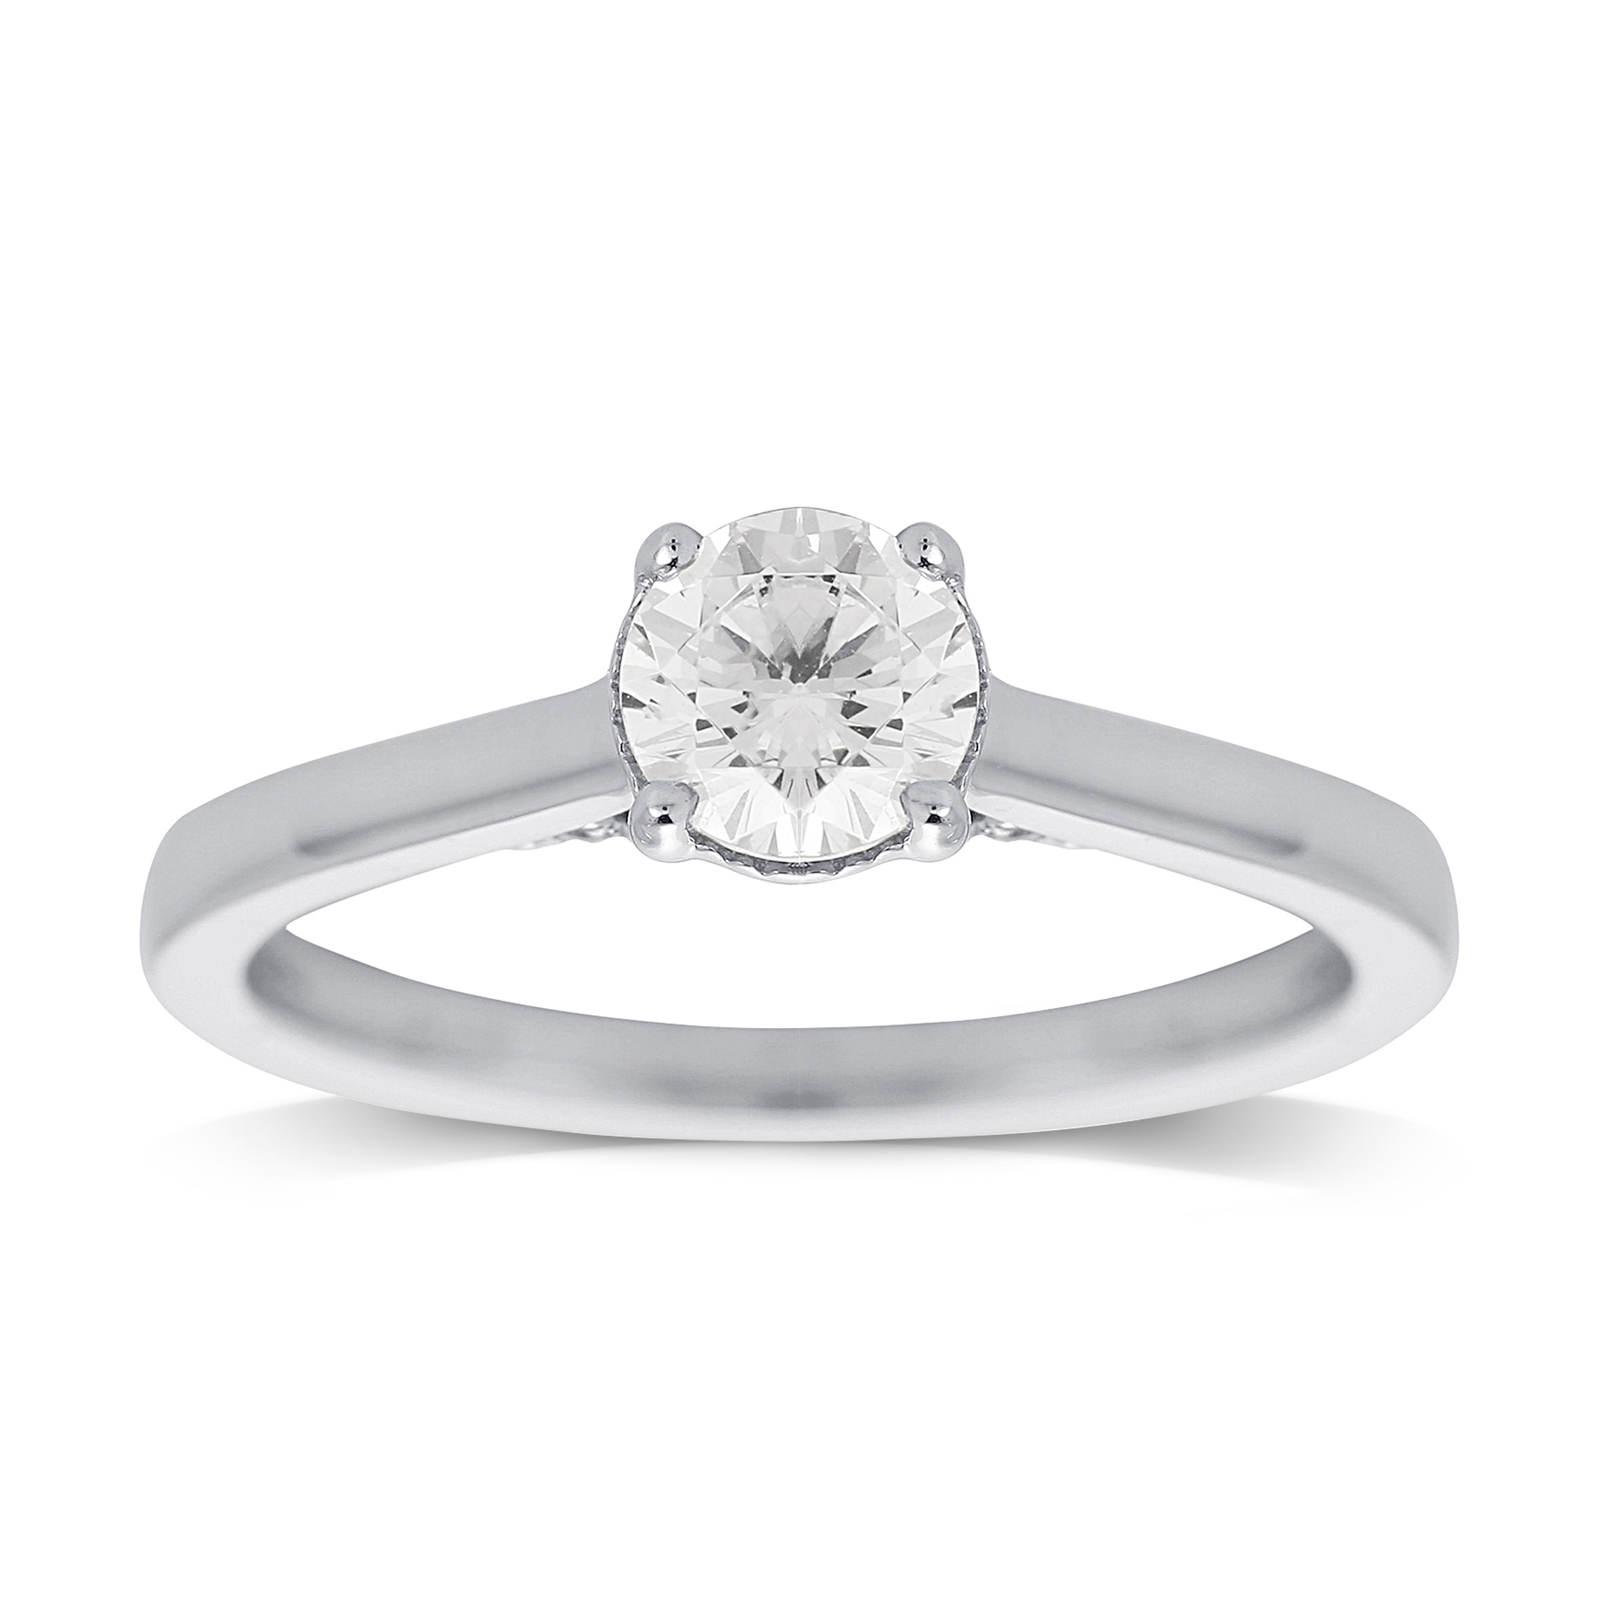 Jenny Packham 18ct White Gold 0.65ct Diamond Ring - Ring Size J